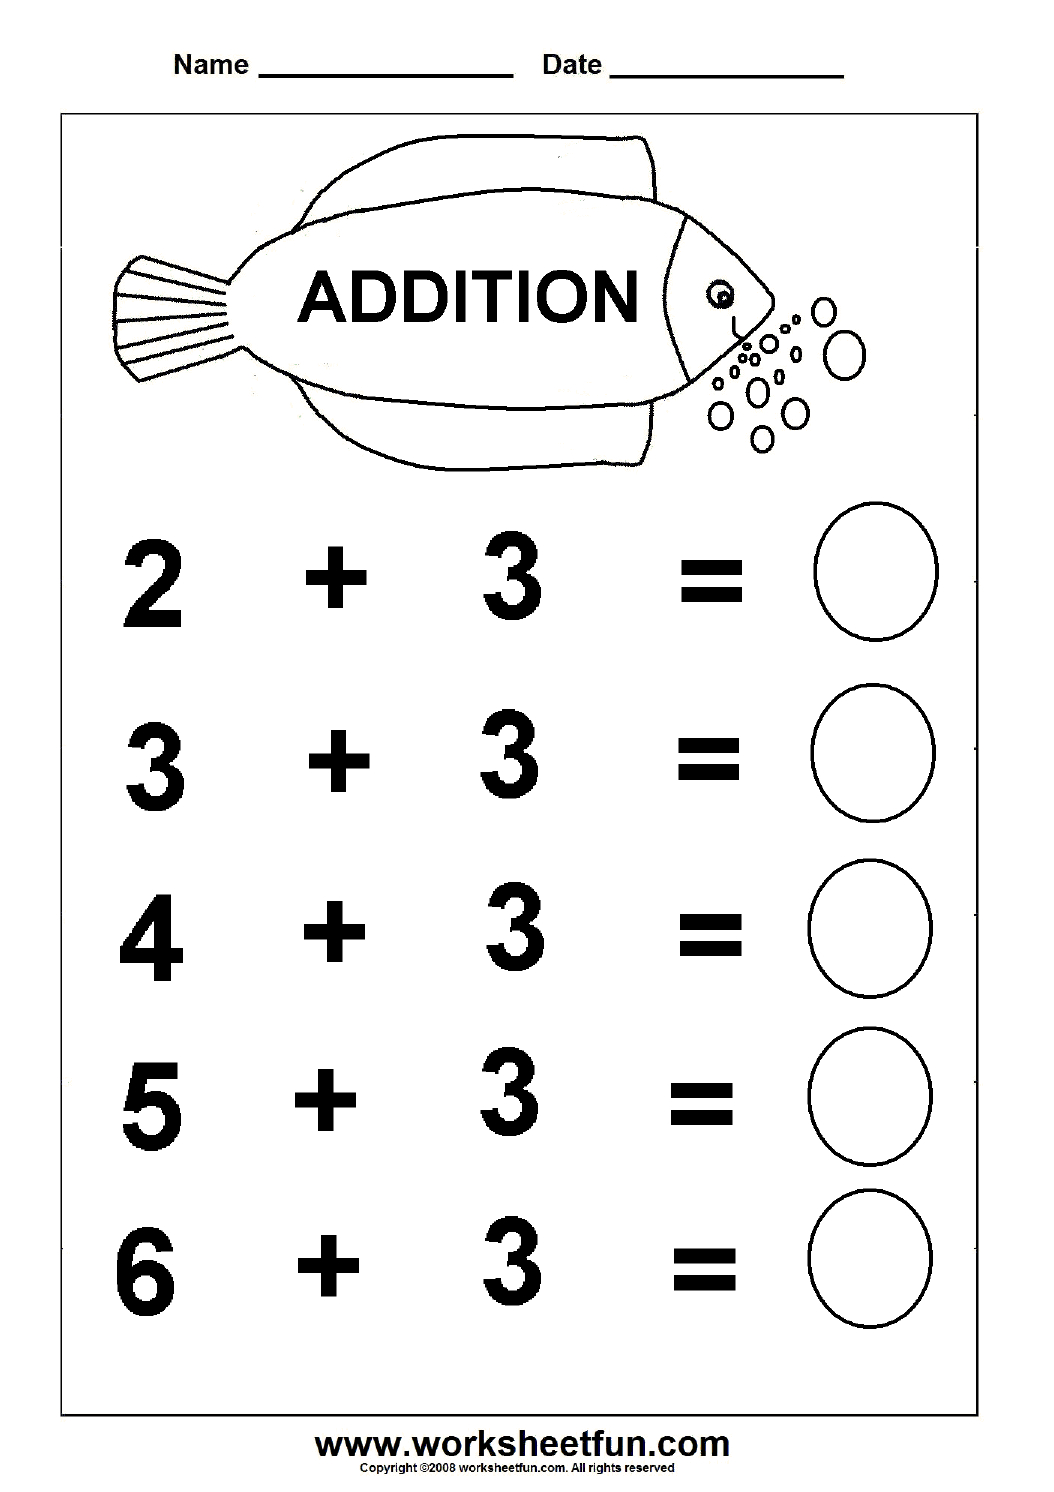 Printable Math Worksheets For Toddlers